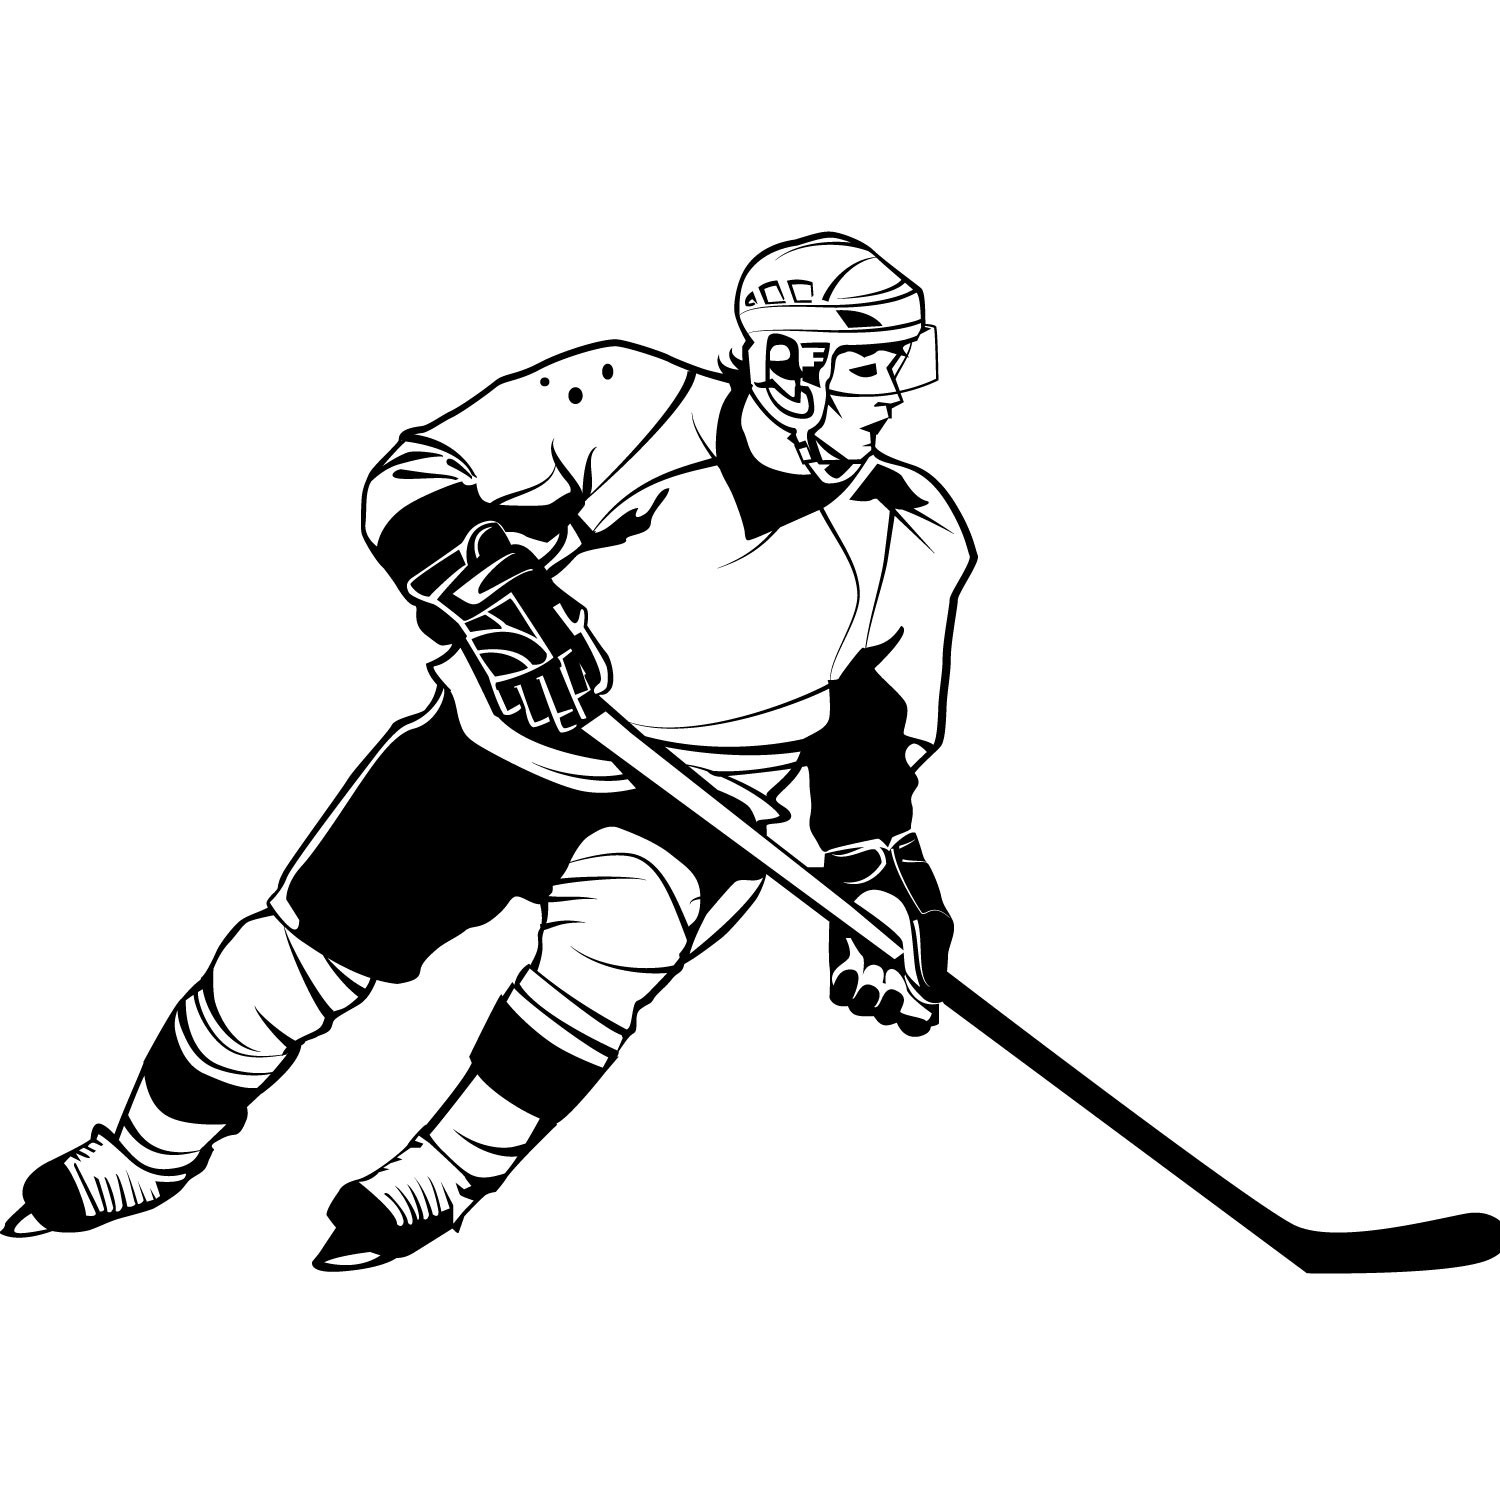 Glove clipart ice hockey Clipart Player Free on Clipart